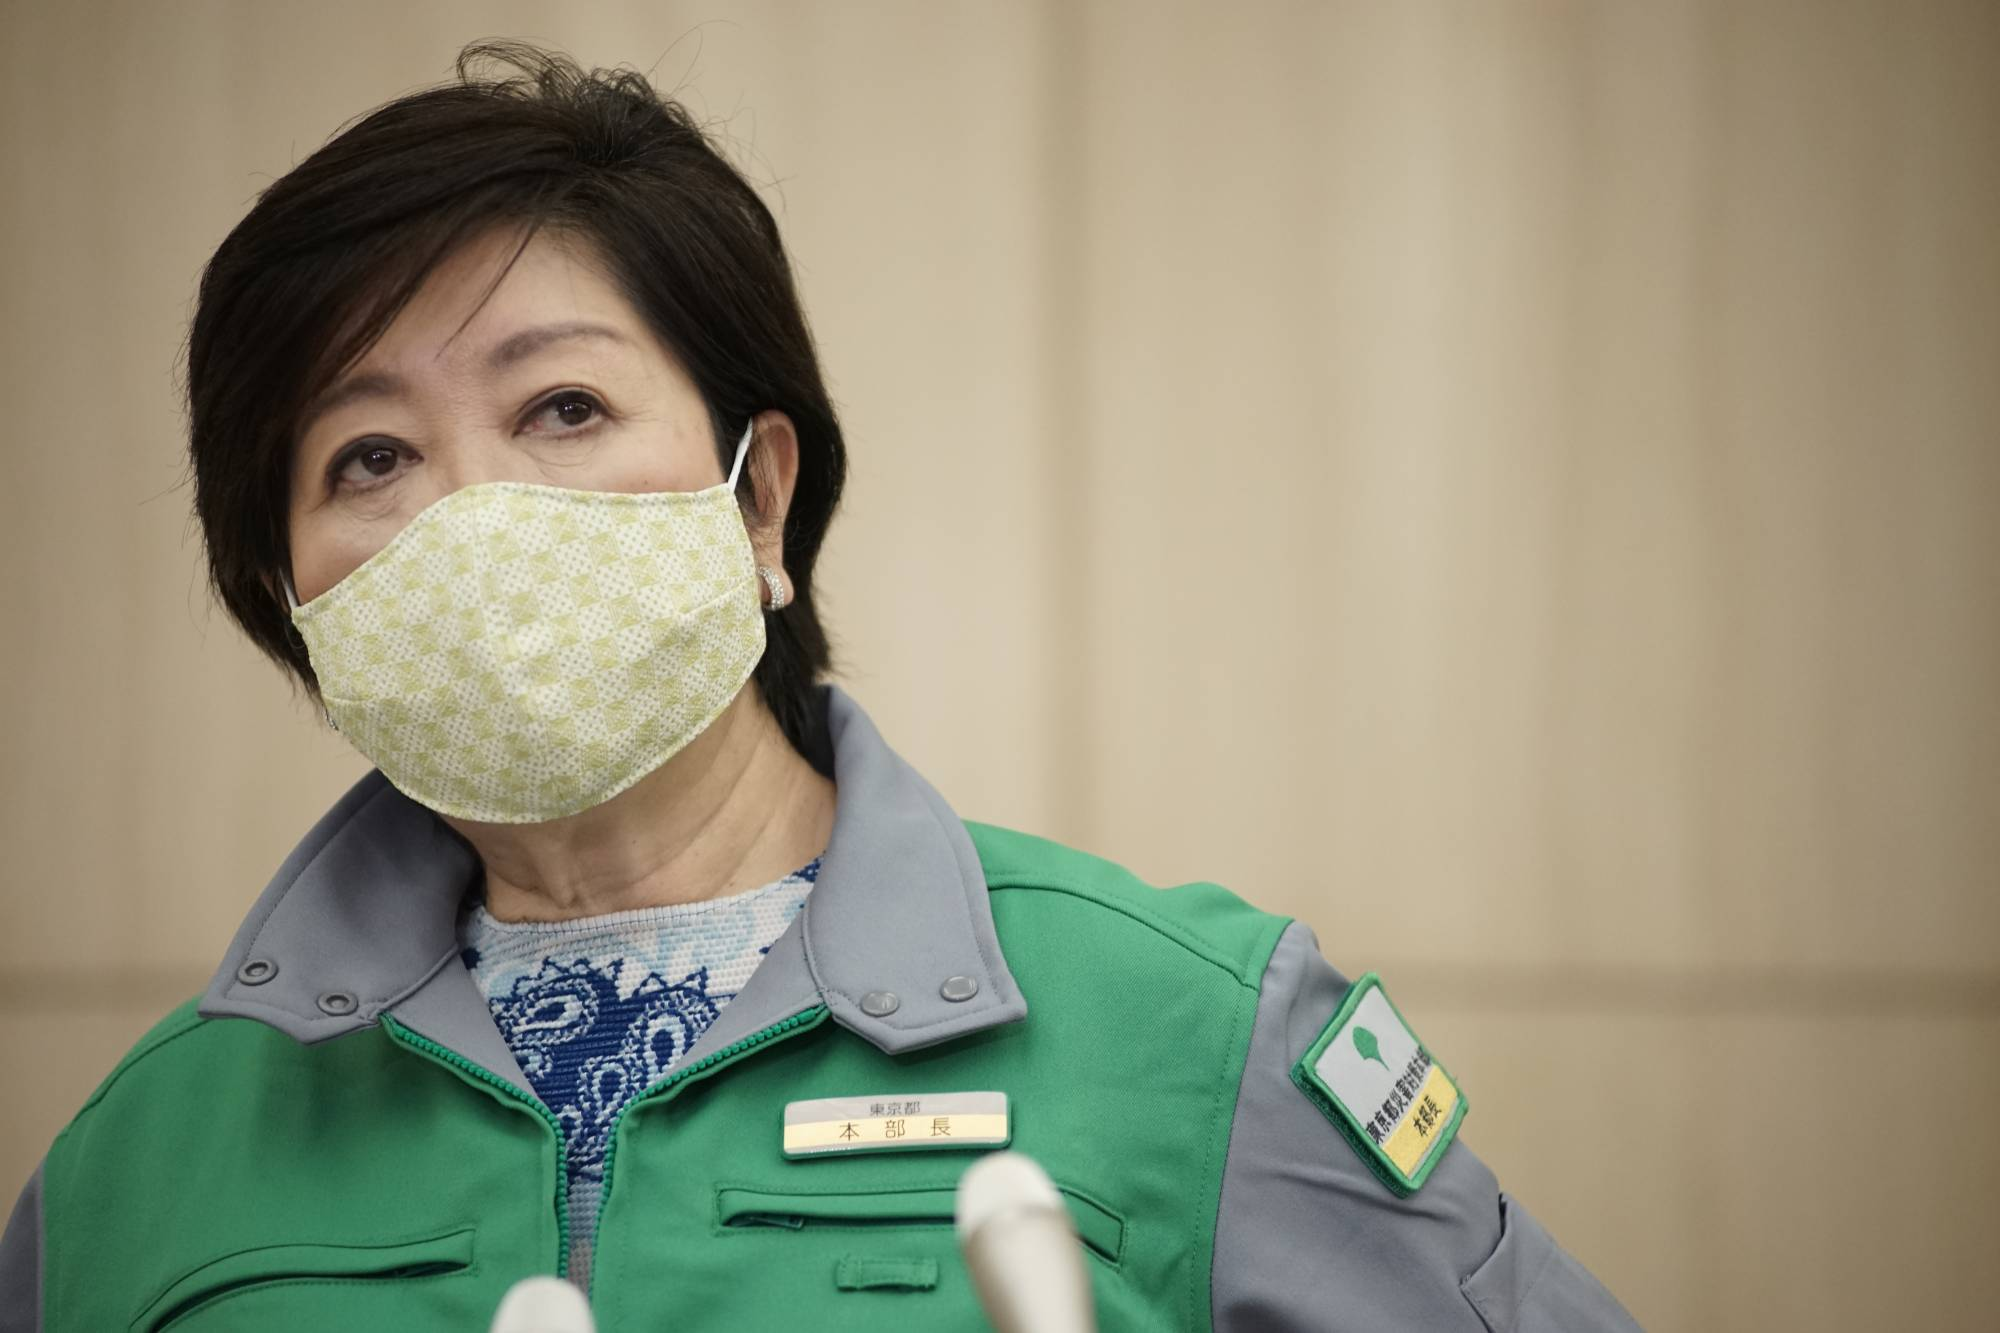 For the most part, Tokyo Gov. Yuriko Koike has marched in lockstep with national leadership in dealing with the coronavirus outbreak, so much so that at times she seemed bound by its often sluggish response or tone-deaf messaging for fear of overextending herself or being thrust into the limelight.   RYUSEI TAKAHASHI